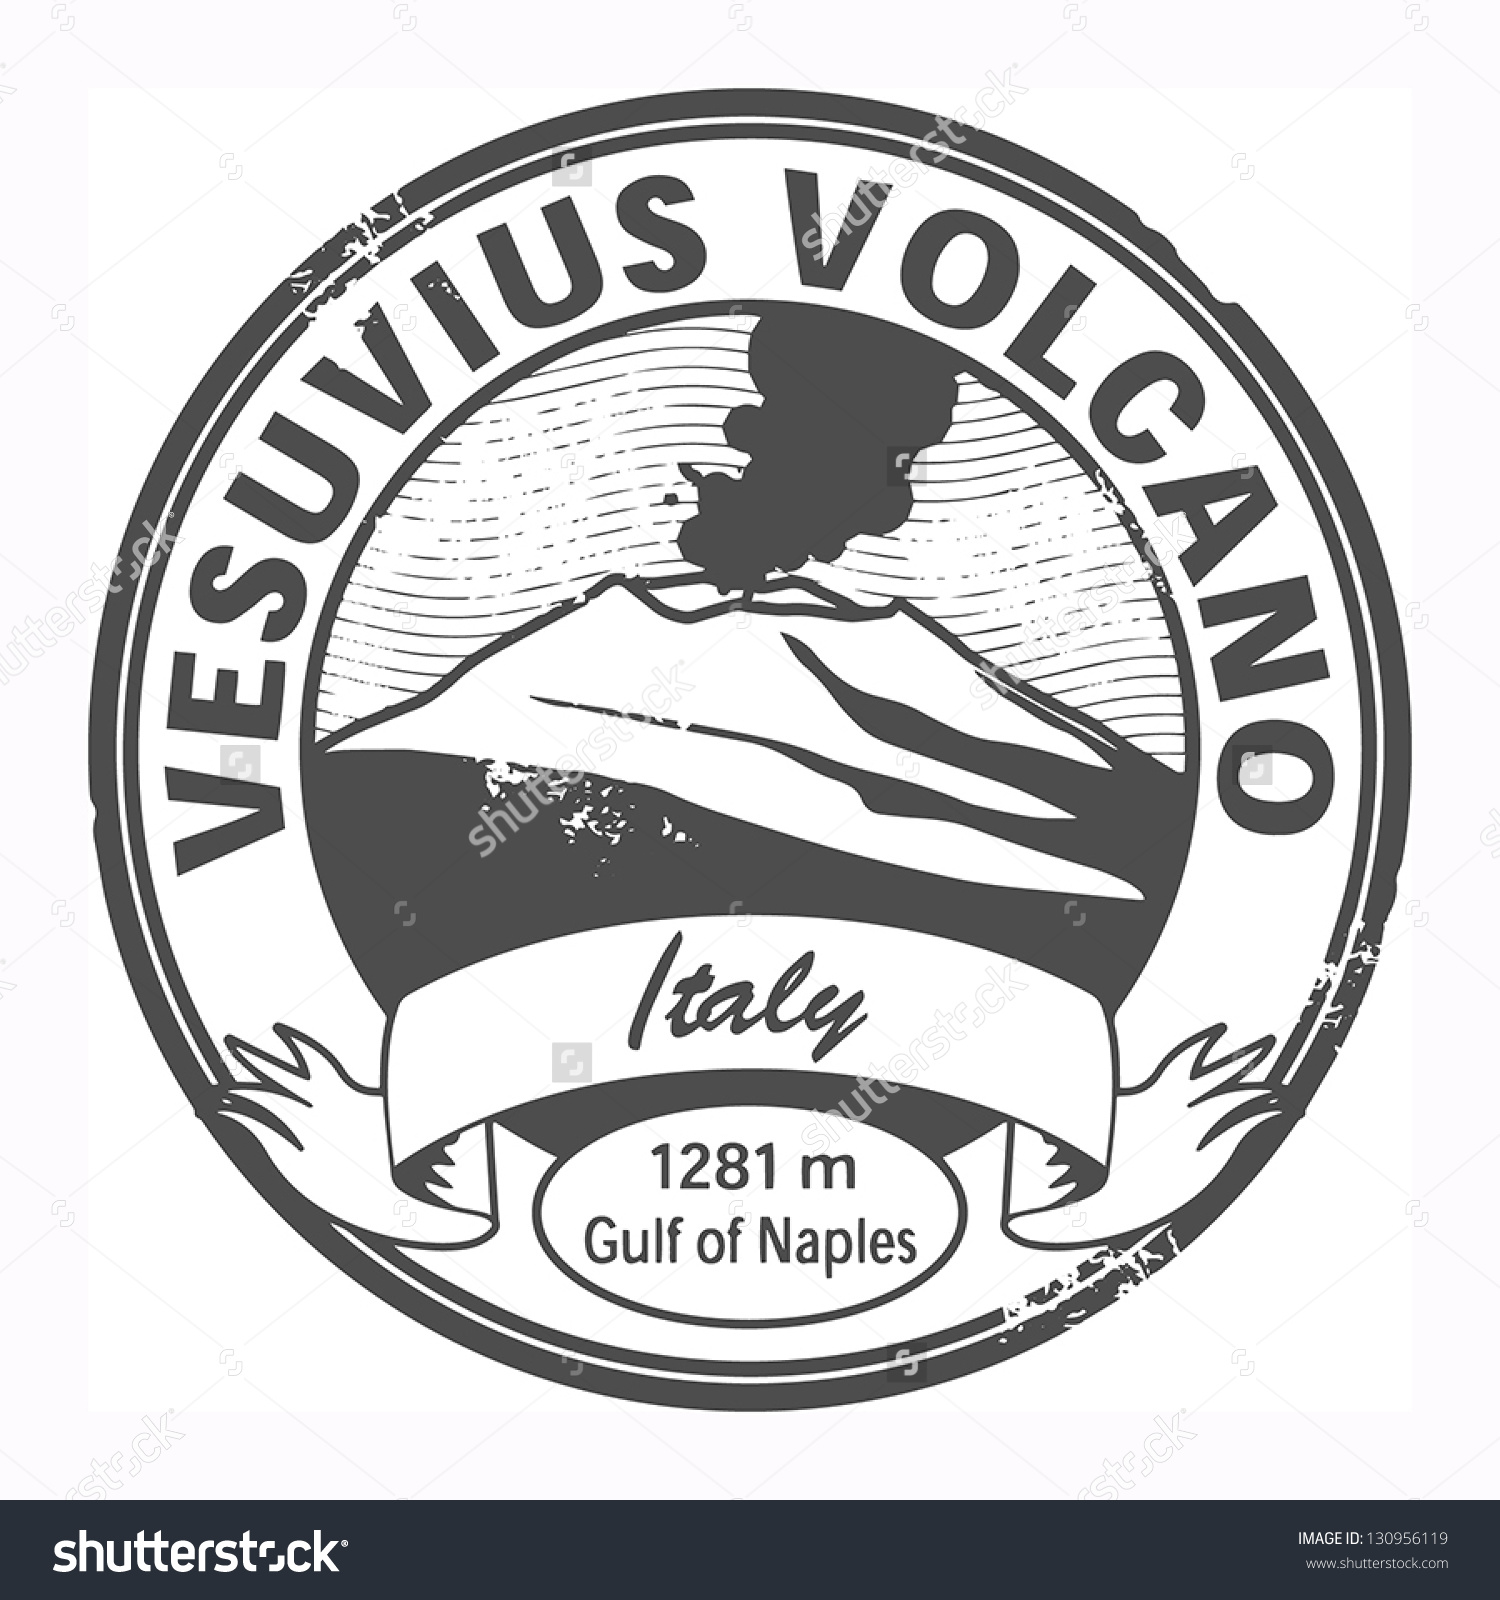 Grunge Stamp Words Vesuvius Italy Vector Stock Vector 130956119.